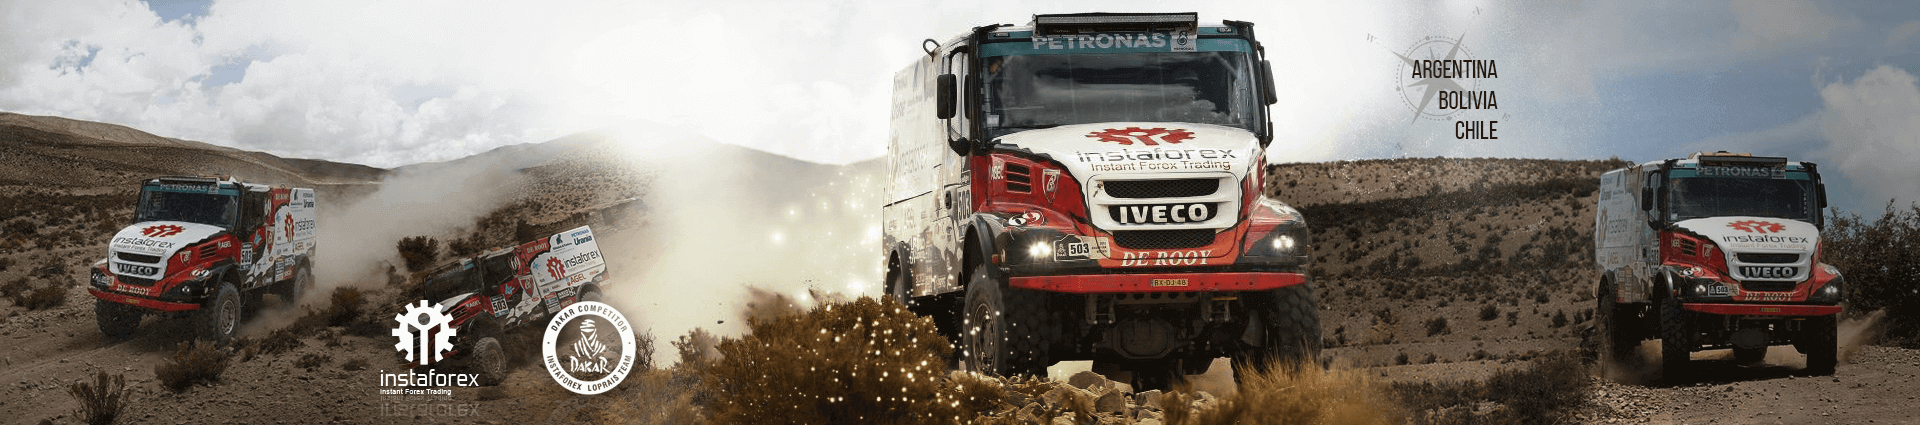 InstaForex Loprais Team - Official participant of the Dakar rally